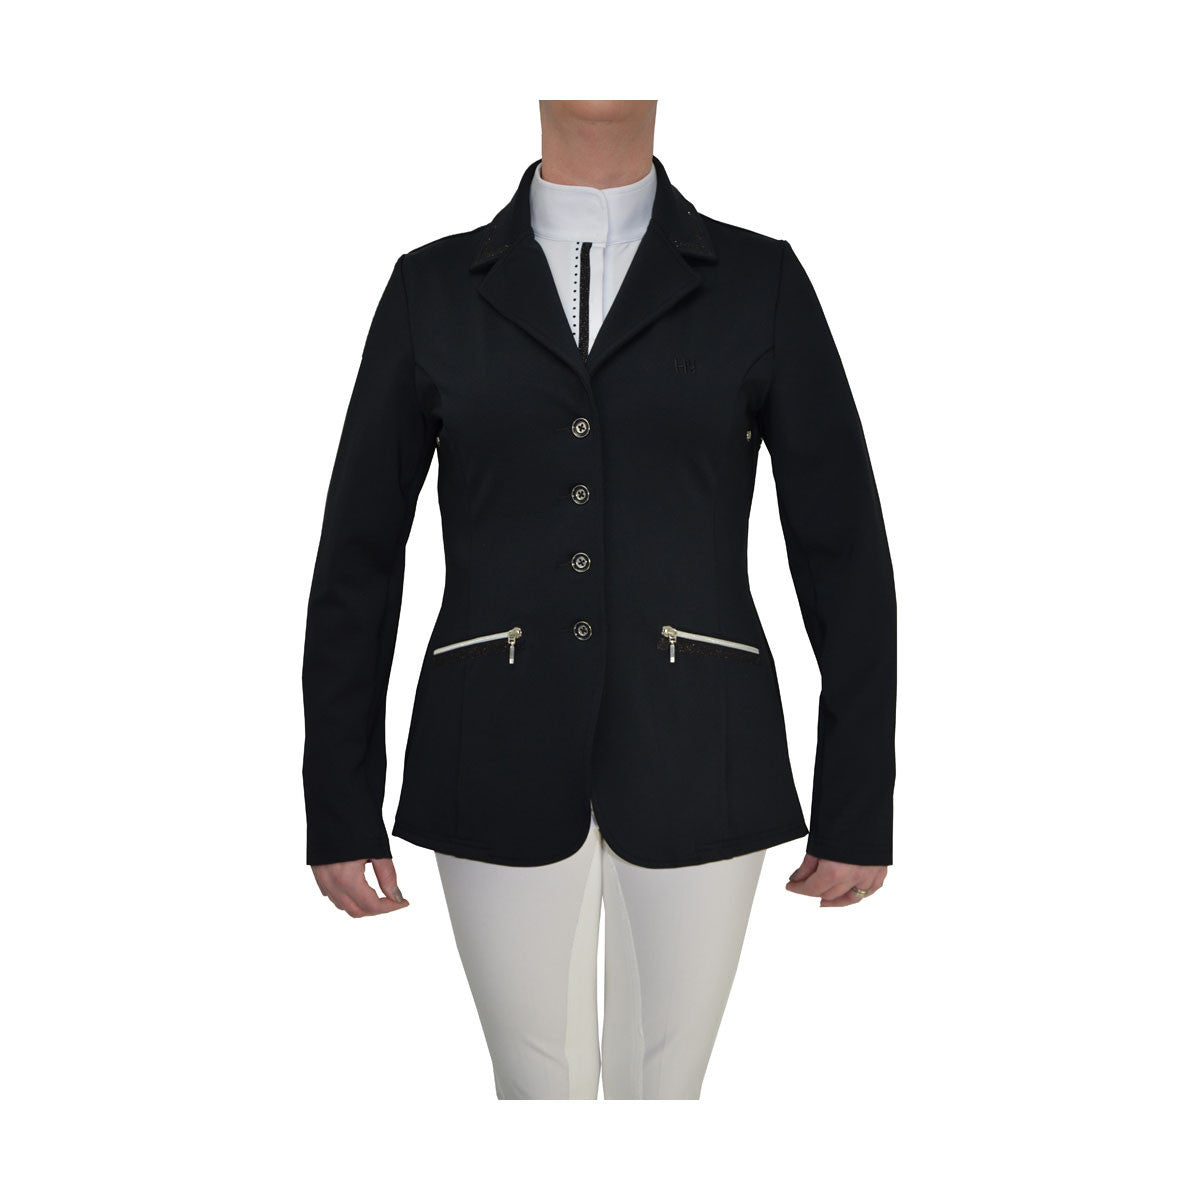 HyFASHION Ladies Roka Competition Jacket